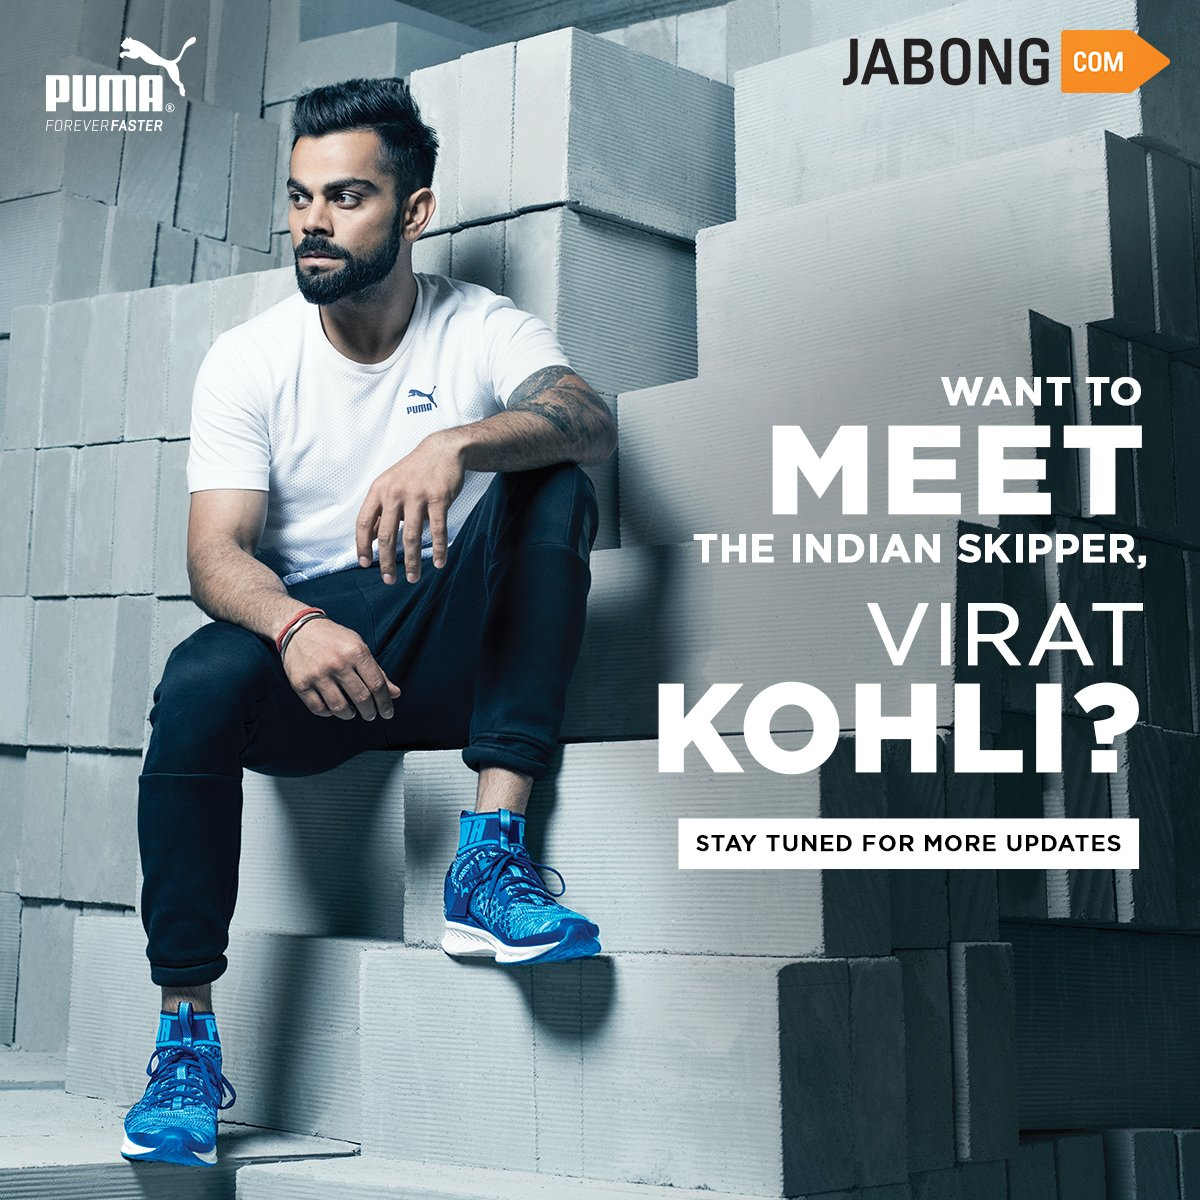 puma shoes virat kohli twitter pics for profile jesus